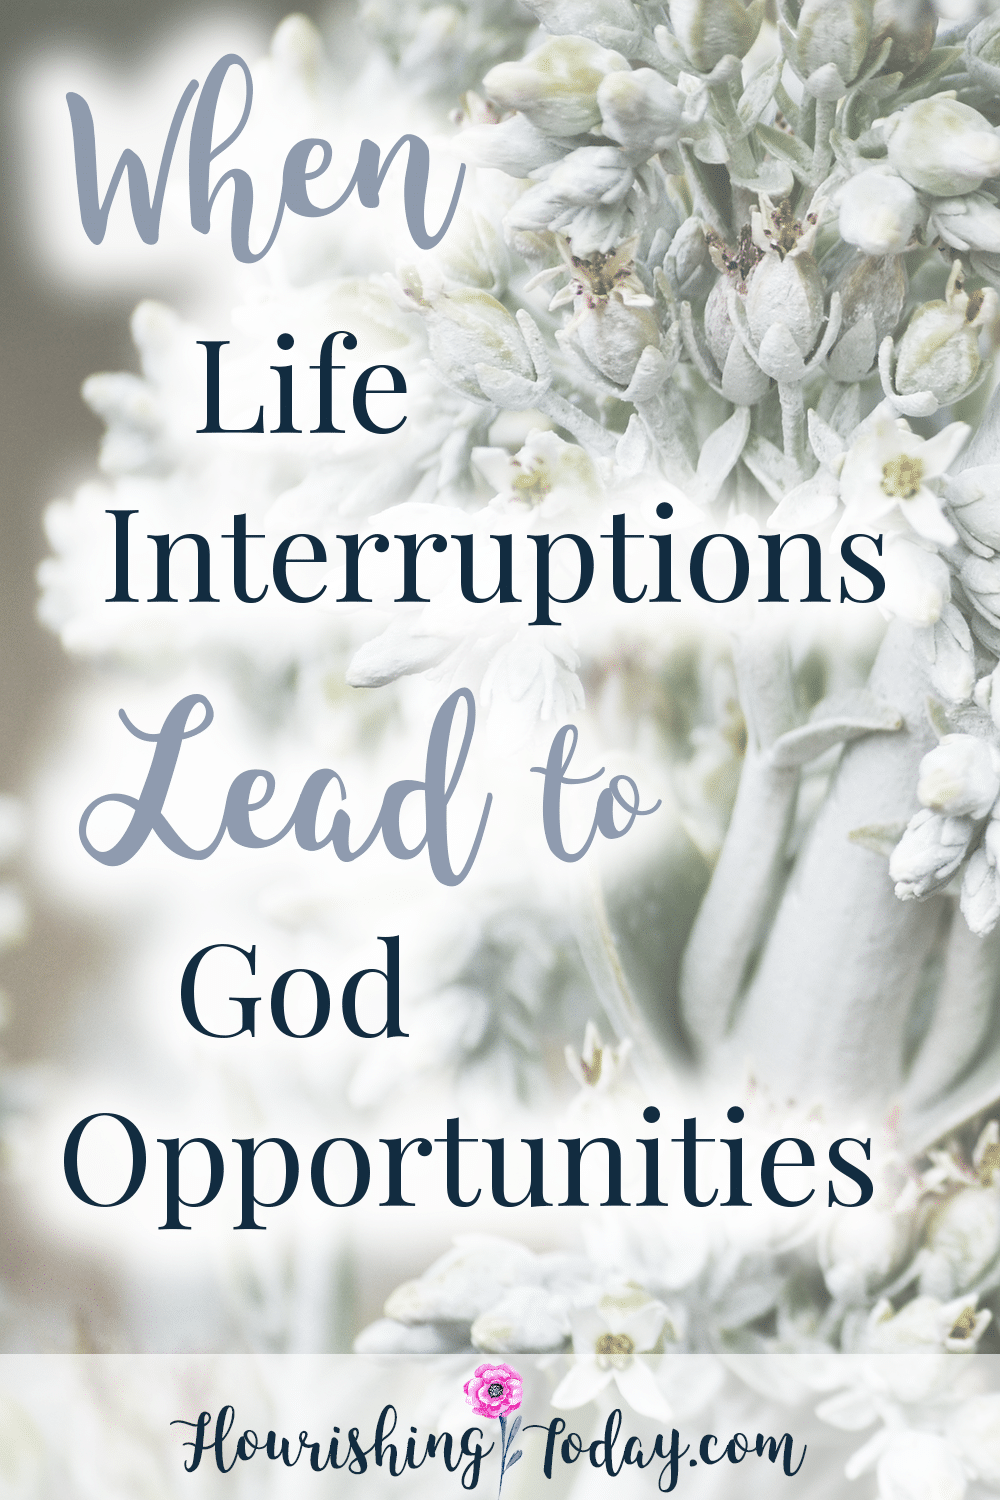 Do you feel like life is full of interruptions? While life's interruptions can make us uncomfortable, they can also open the door for God opportunities.